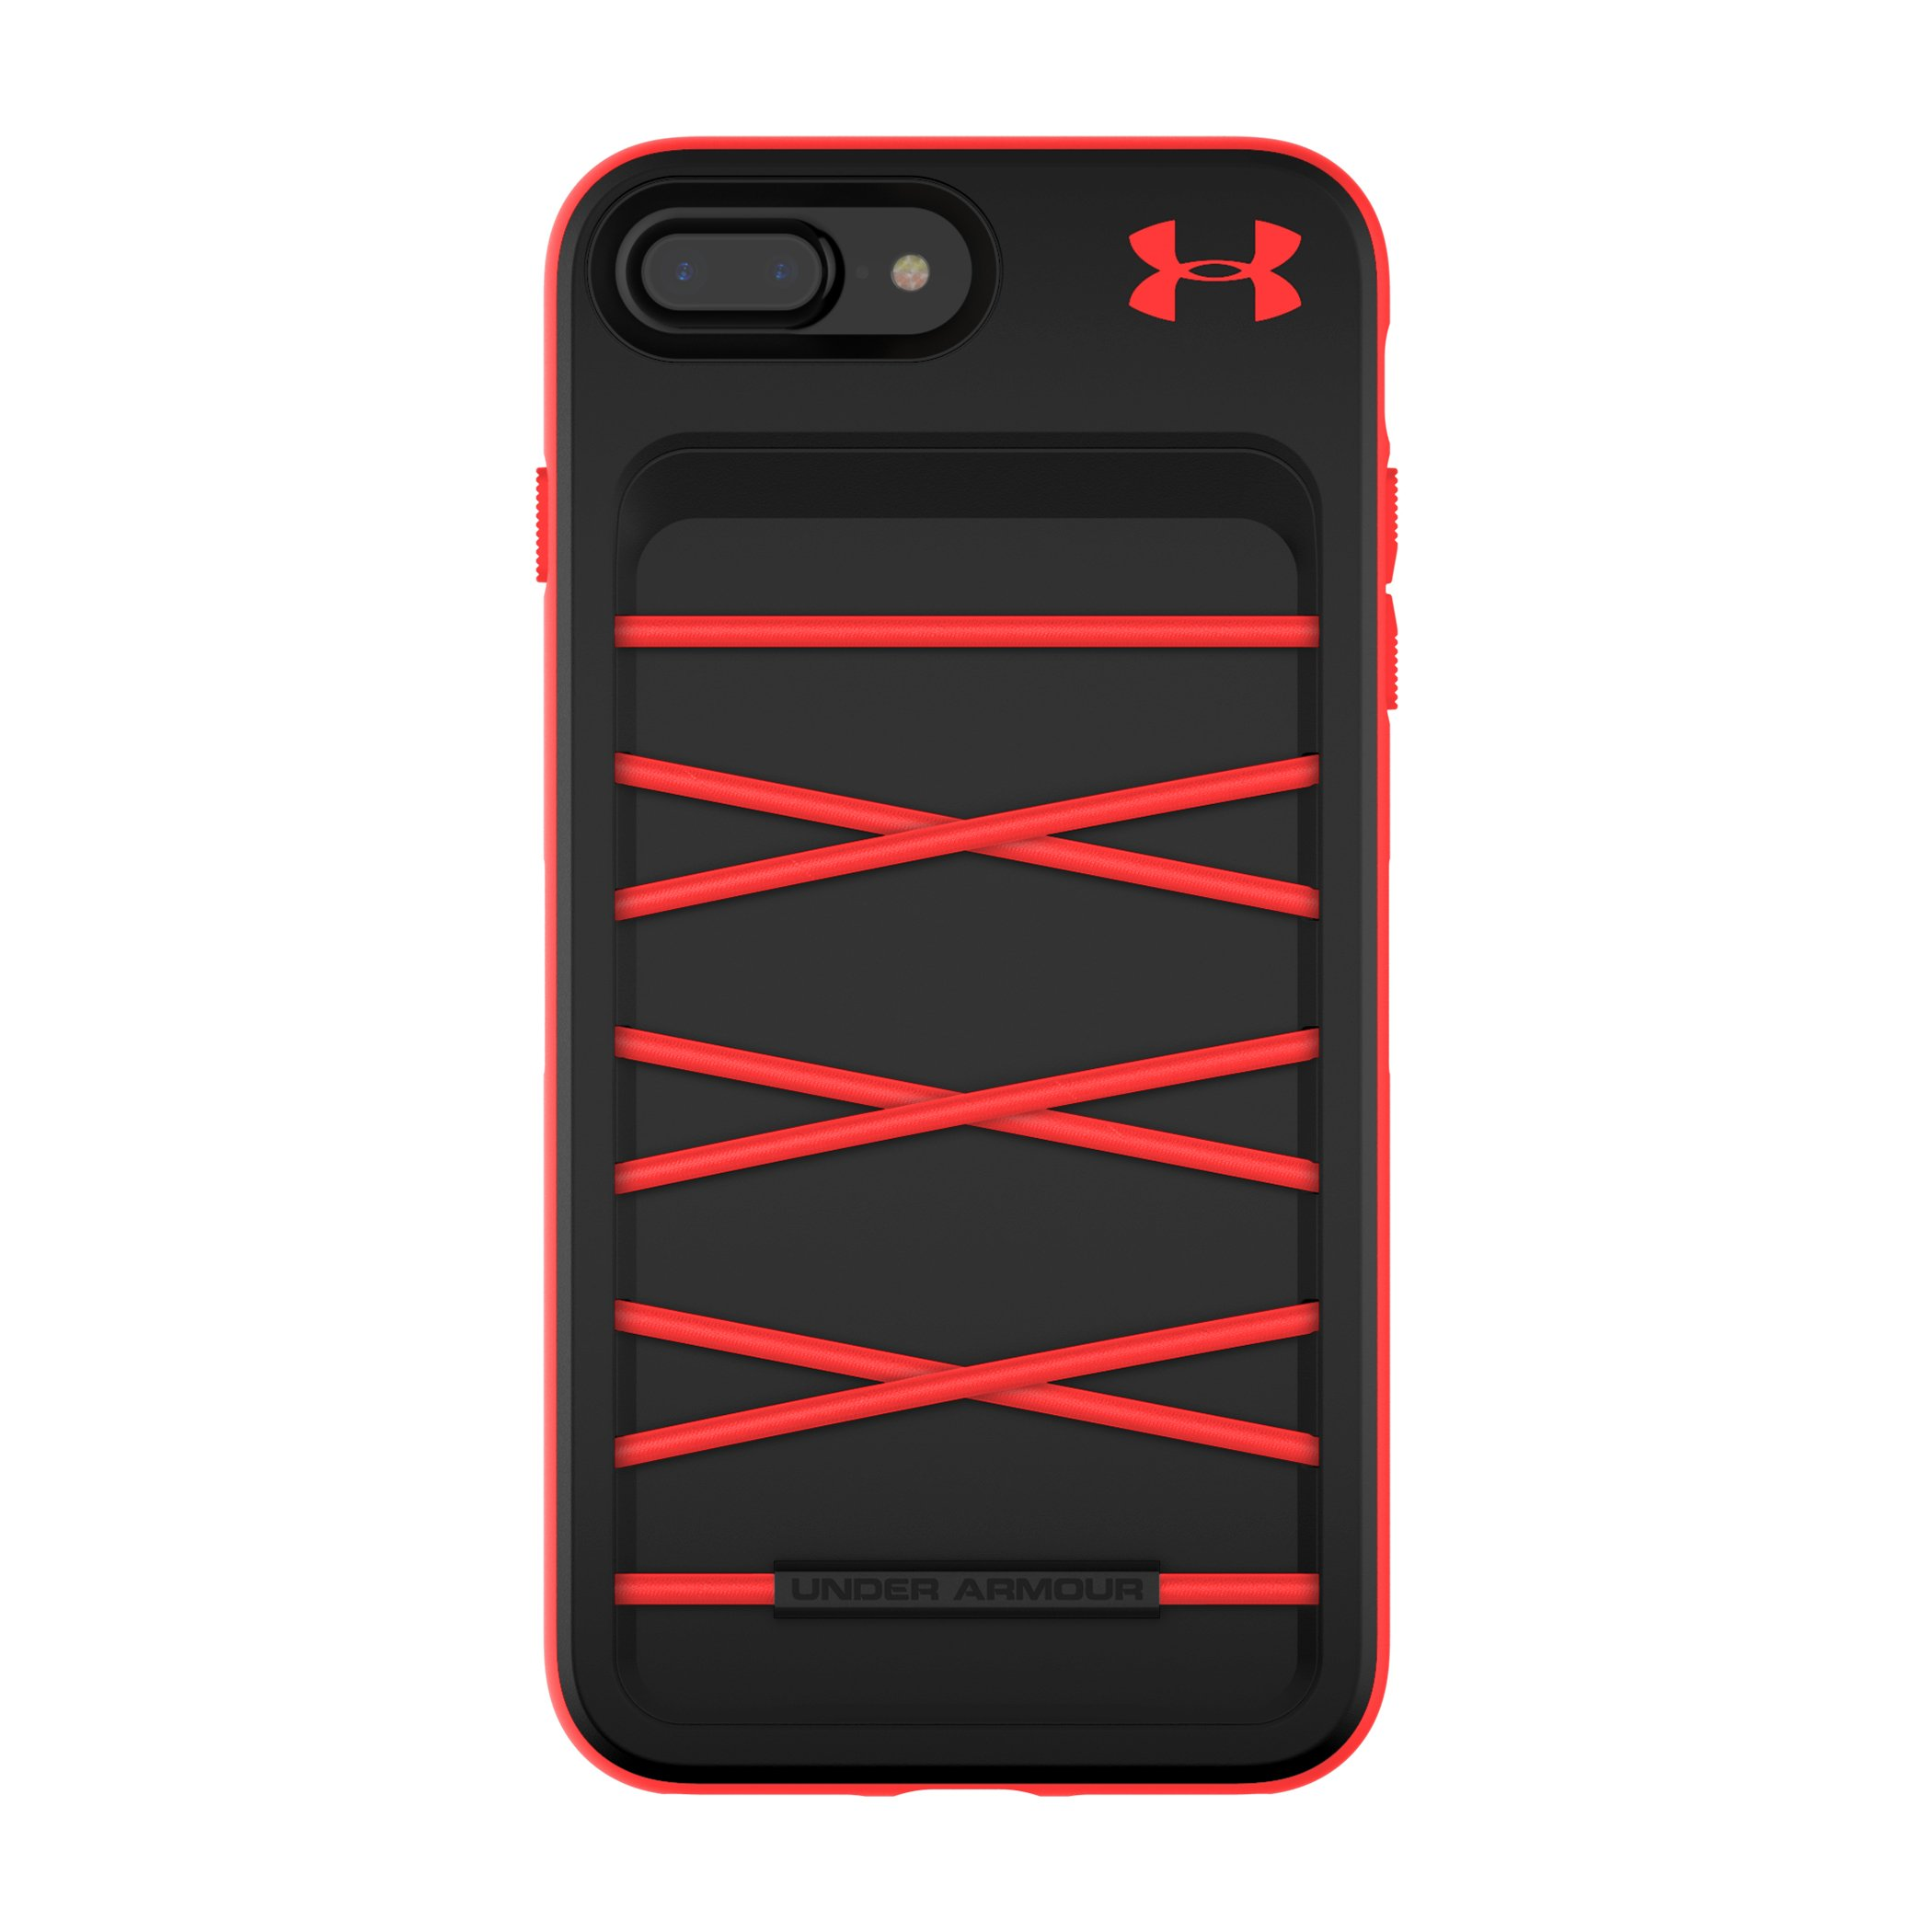 Under Armour UA Protect Arsenal Case for iPhone 8 Plus & iPhone 7 Plus - Black/Red